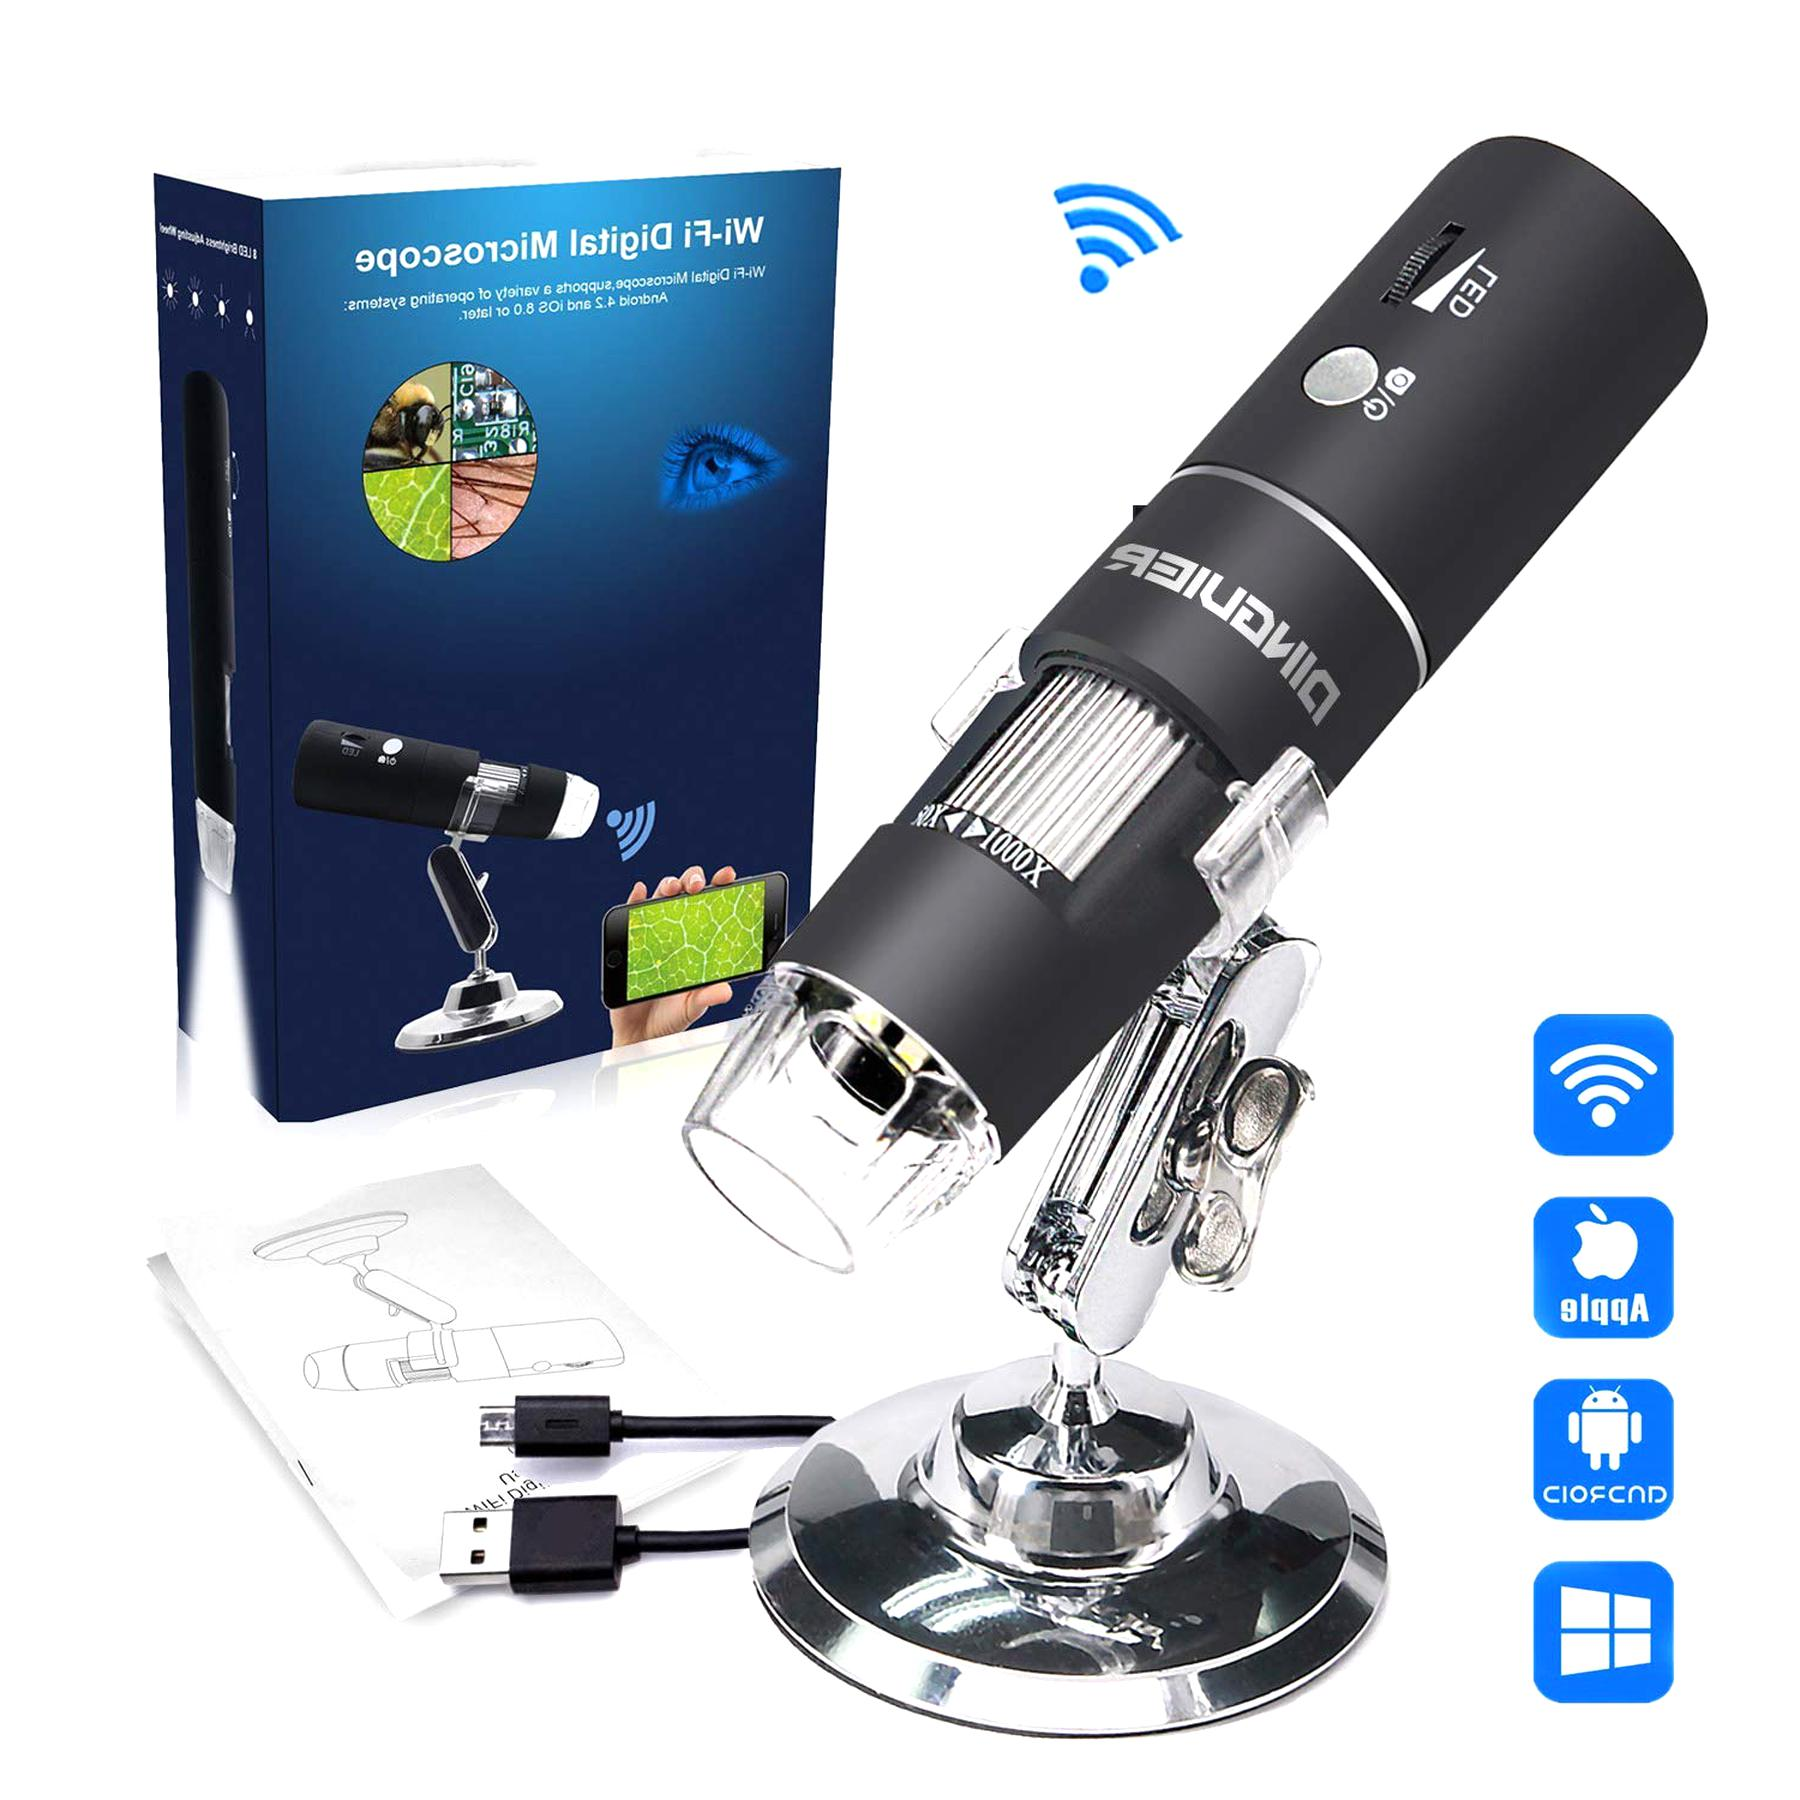 microscope camera usb wi fi for sale